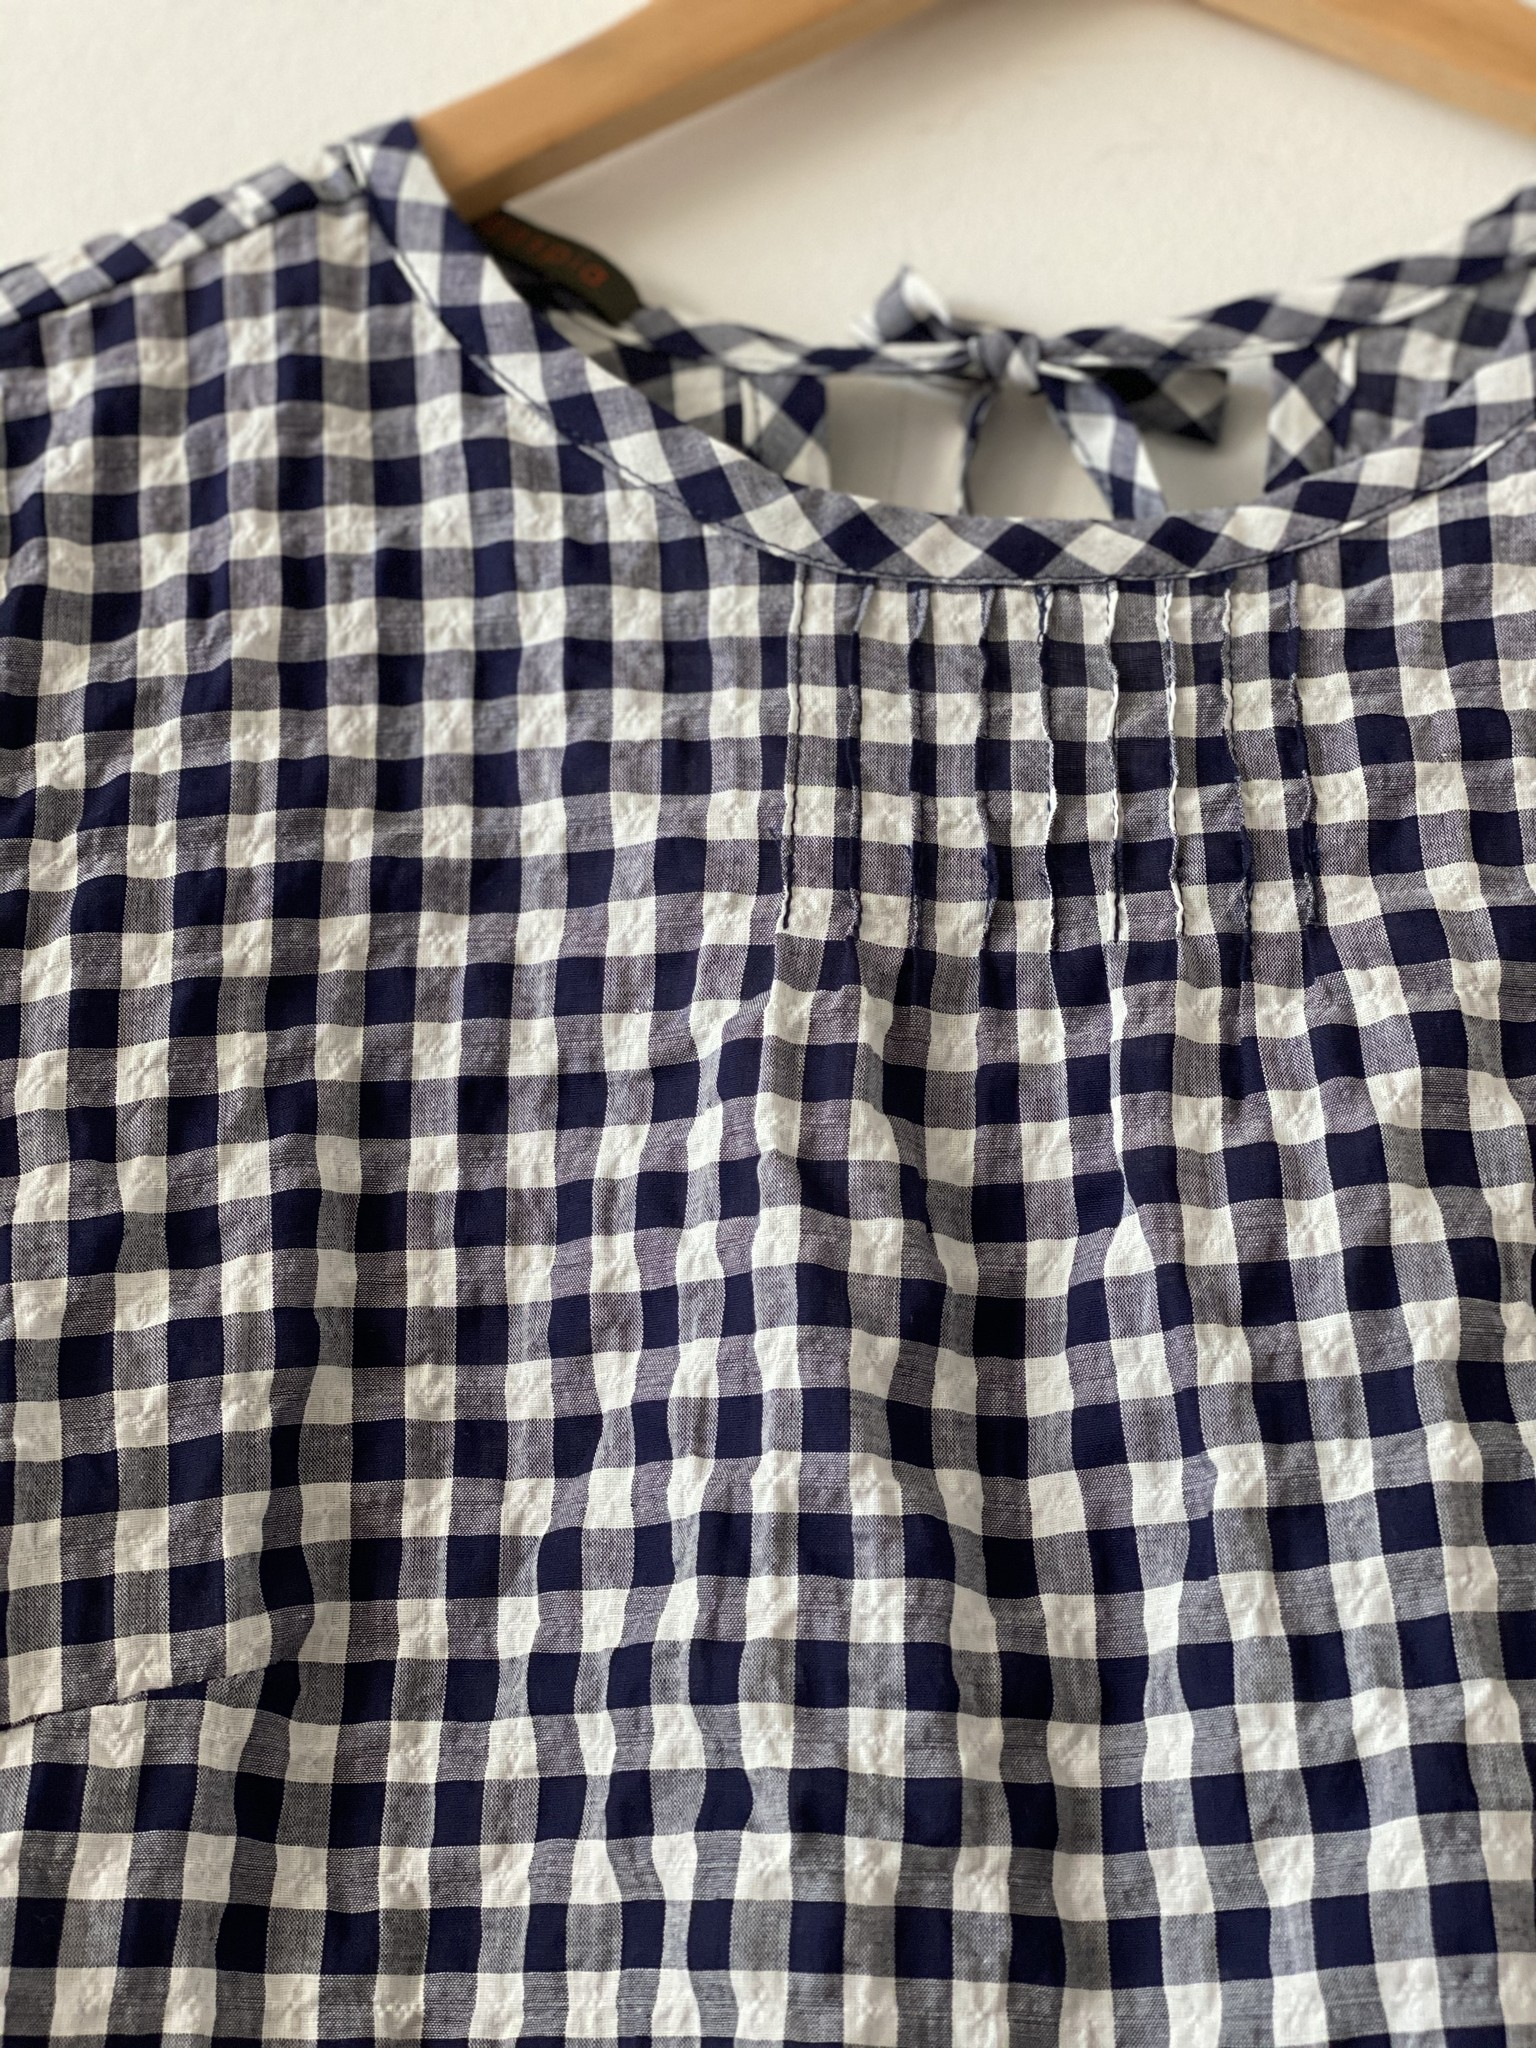 Modaspia Pintuck Blouse in White & Navy Gingham